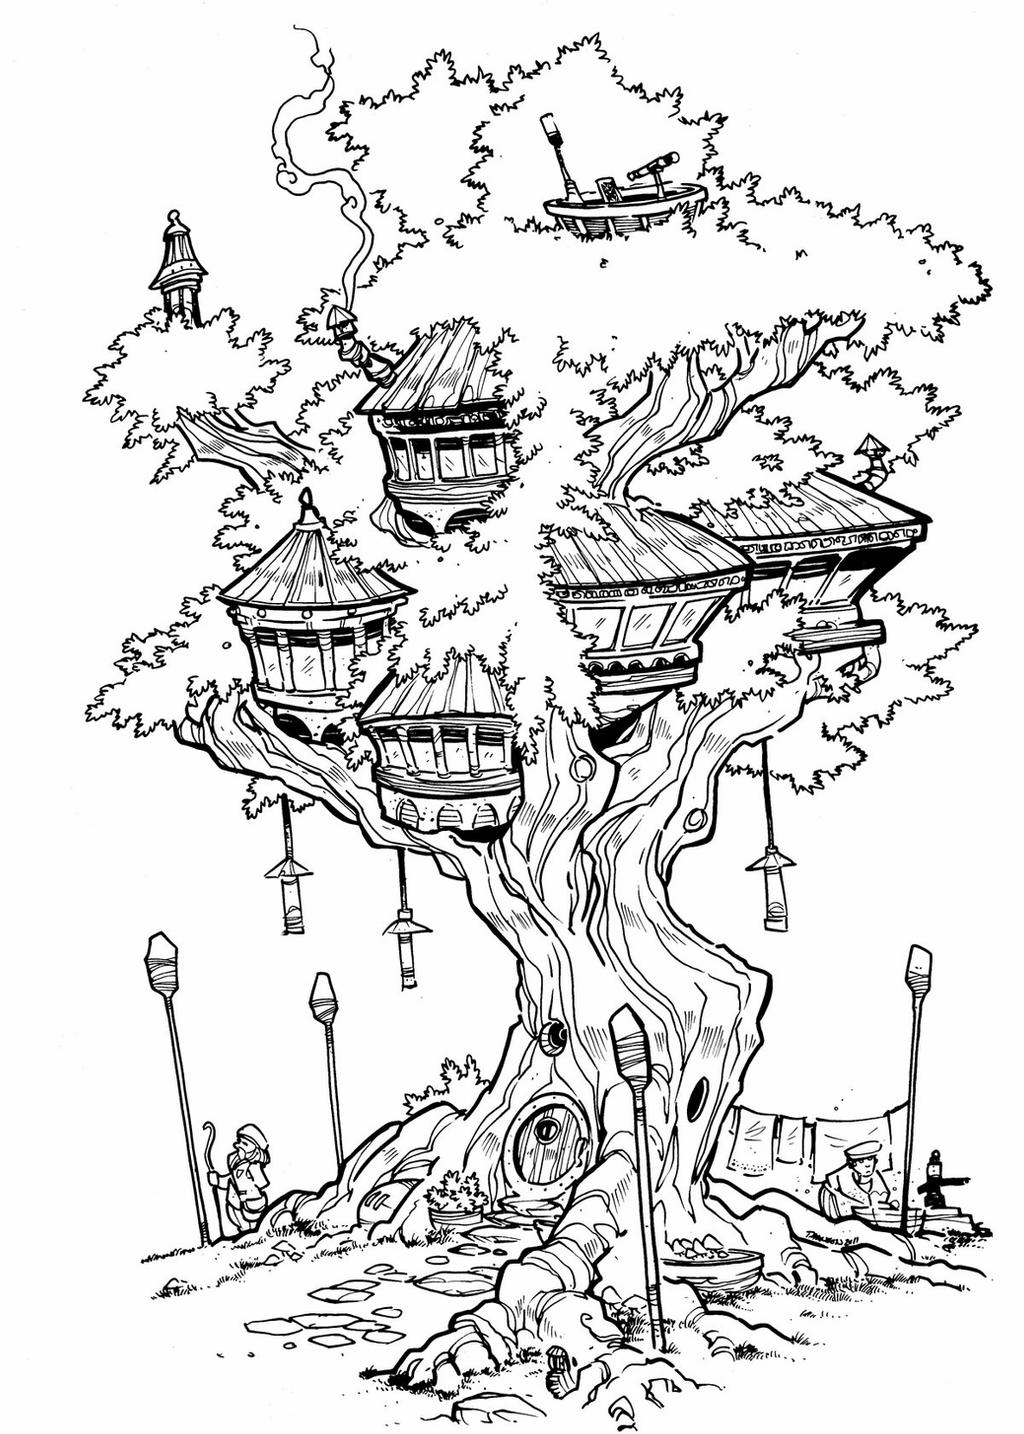 treehouse coloring pages amazing drawing of a treehouse coloring page color luna pages coloring treehouse